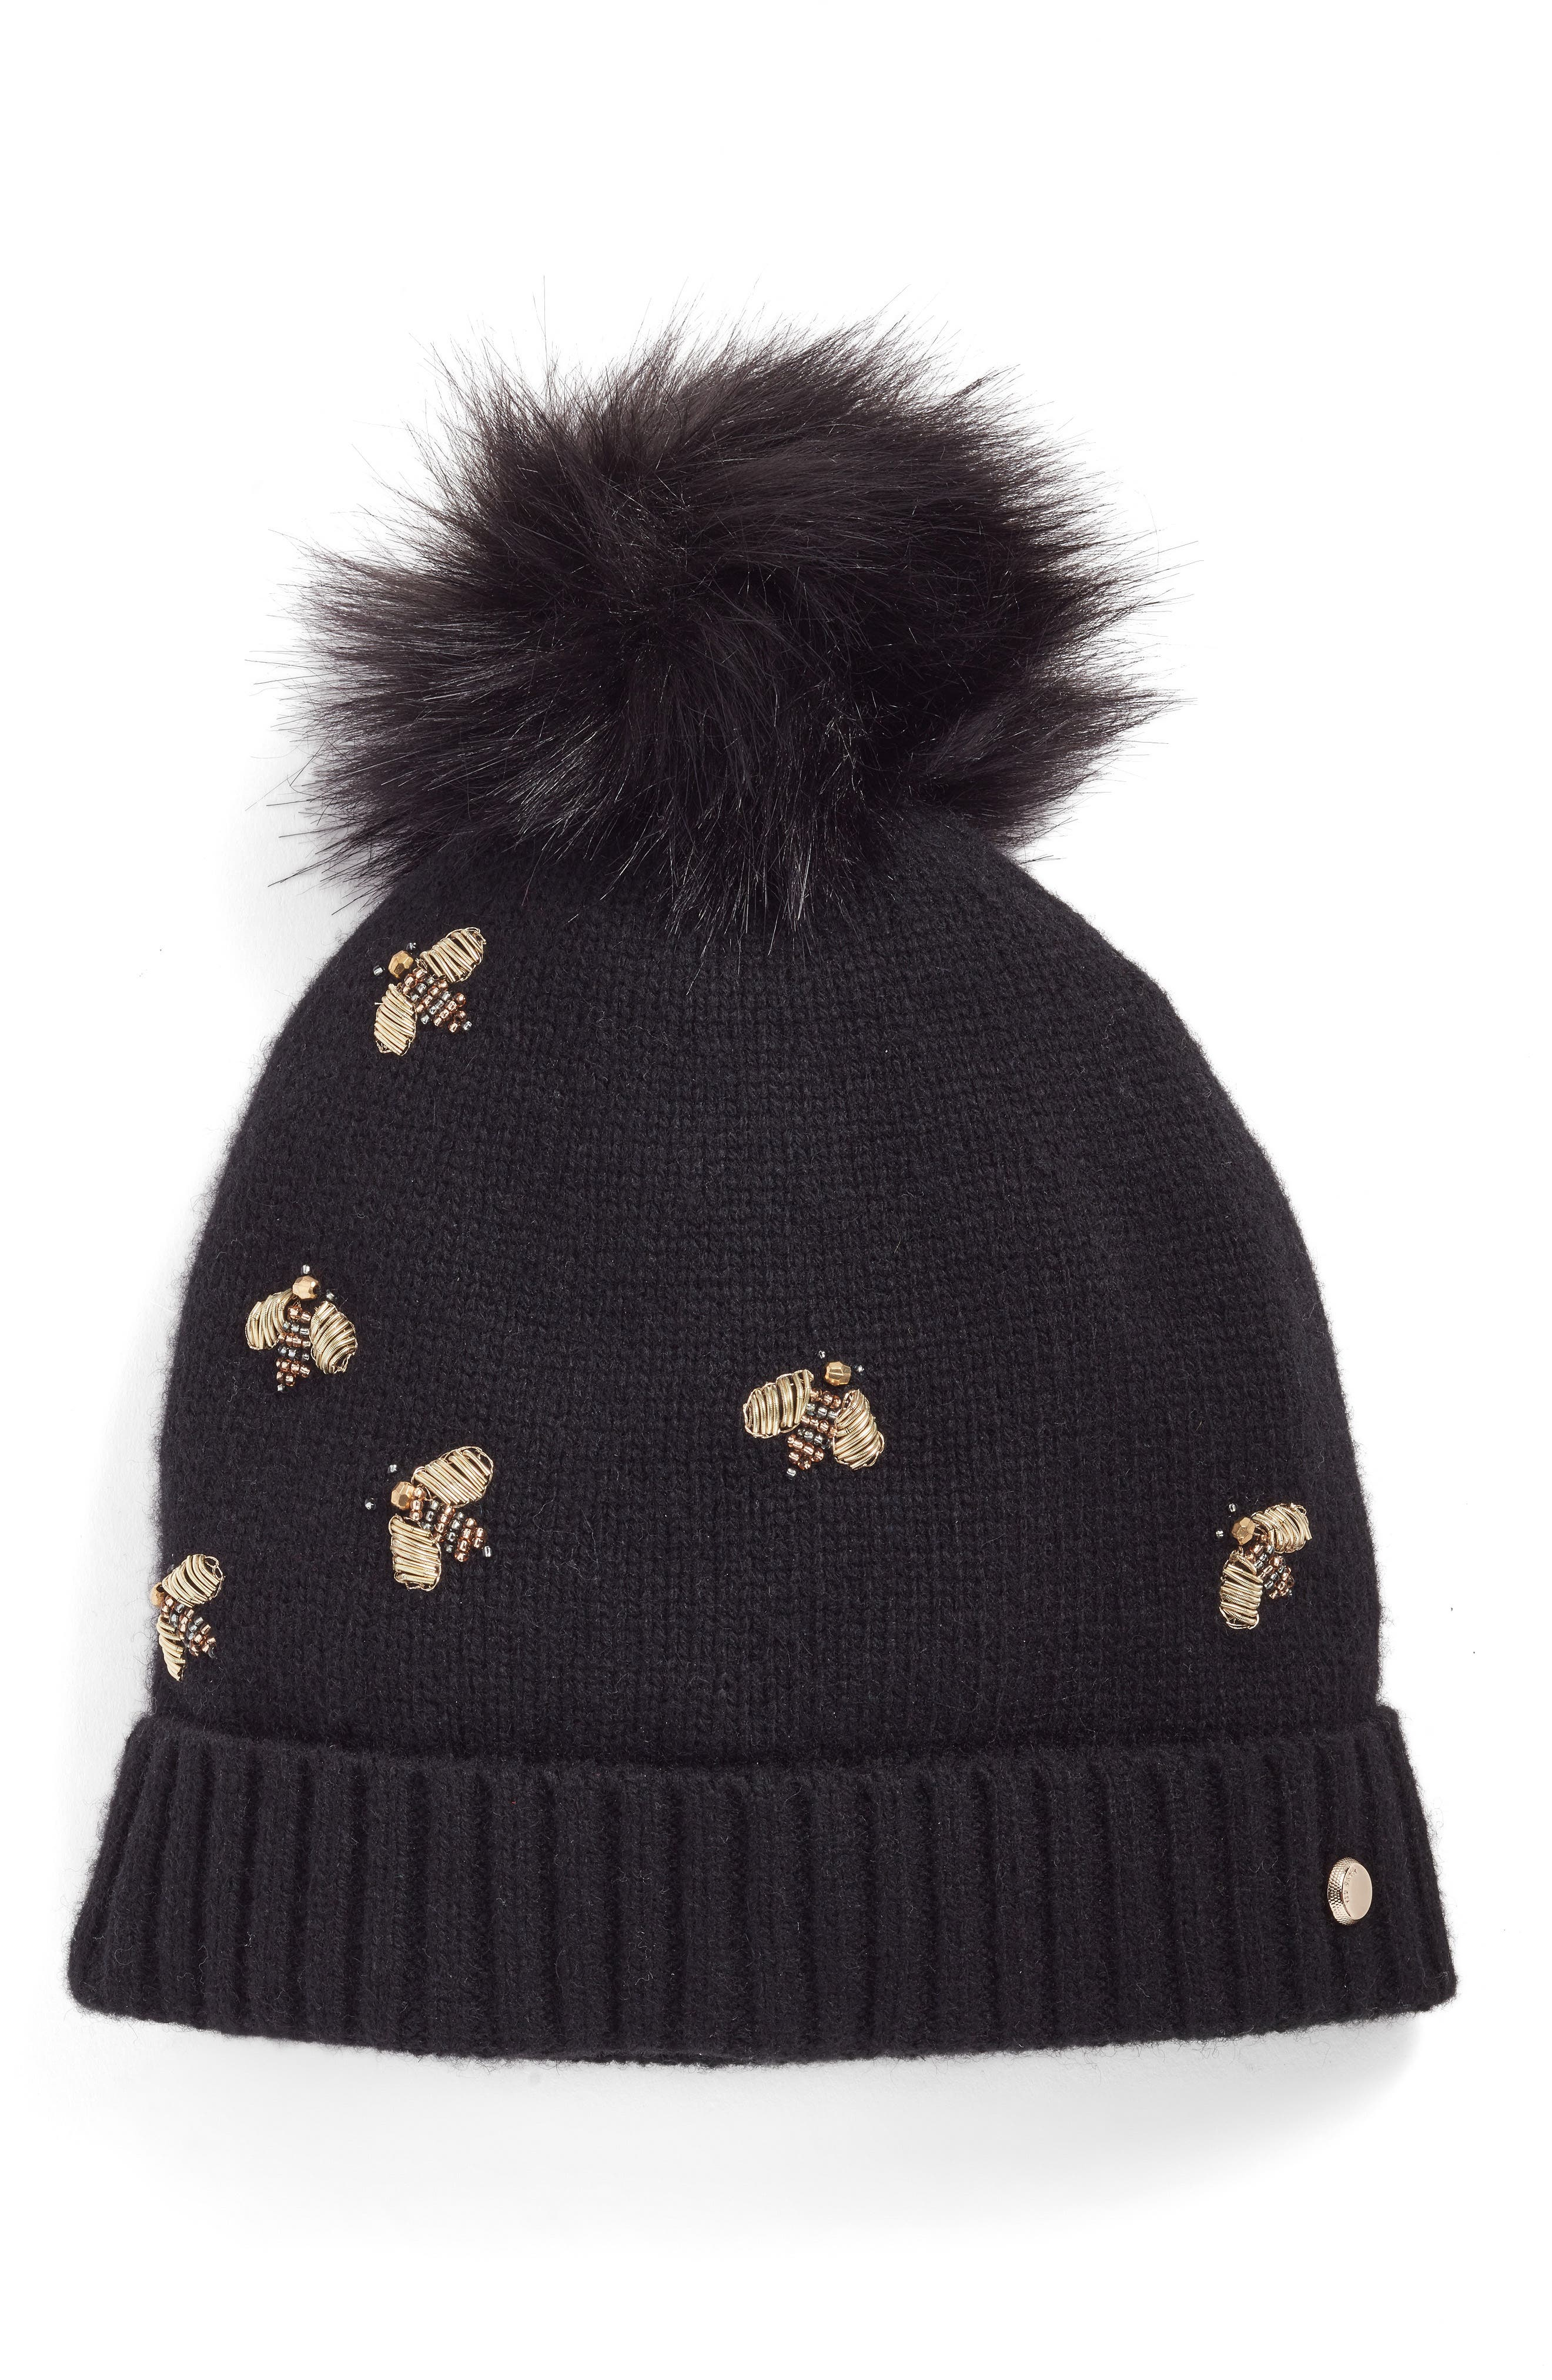 Ted Baker London Bee Embellished Beanie with Faux Fur Pom